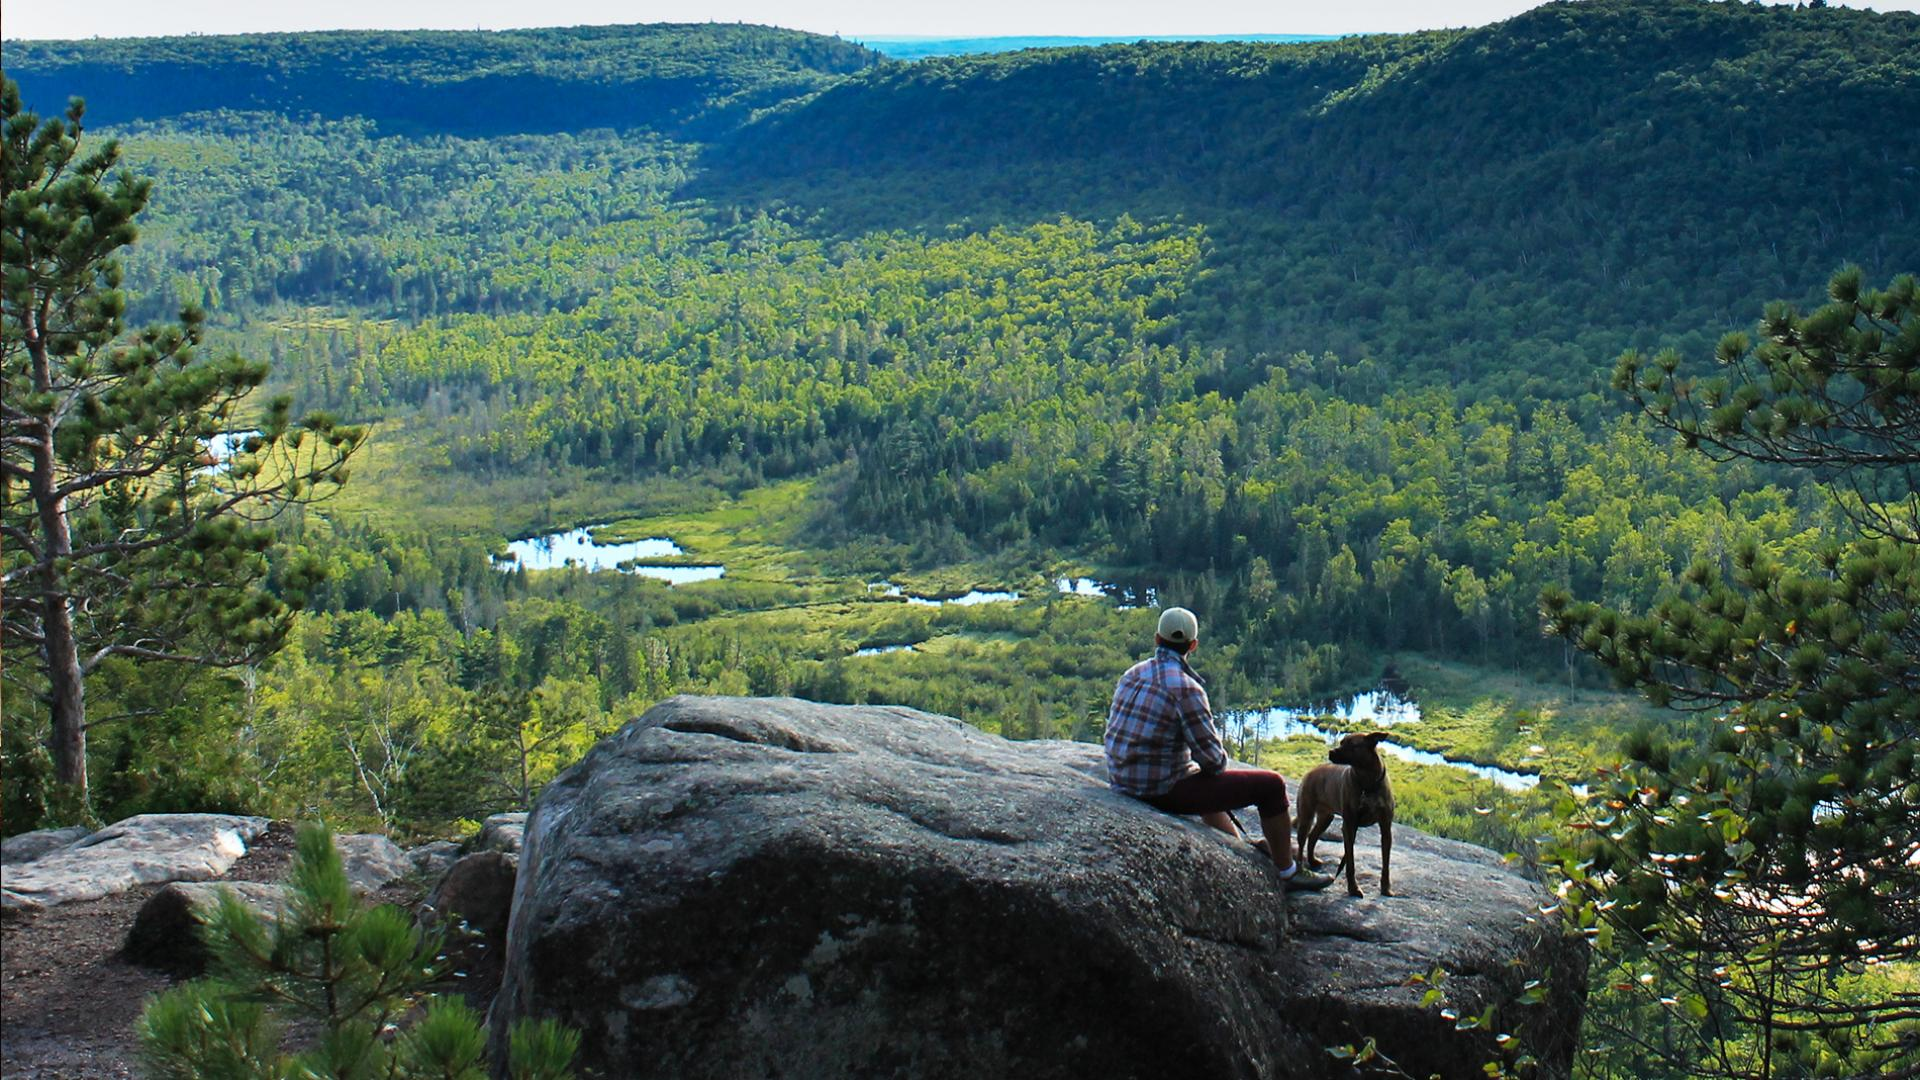 Scenic overlook of the valley from Interstate State Park hiking trail, which is also pet-friendly